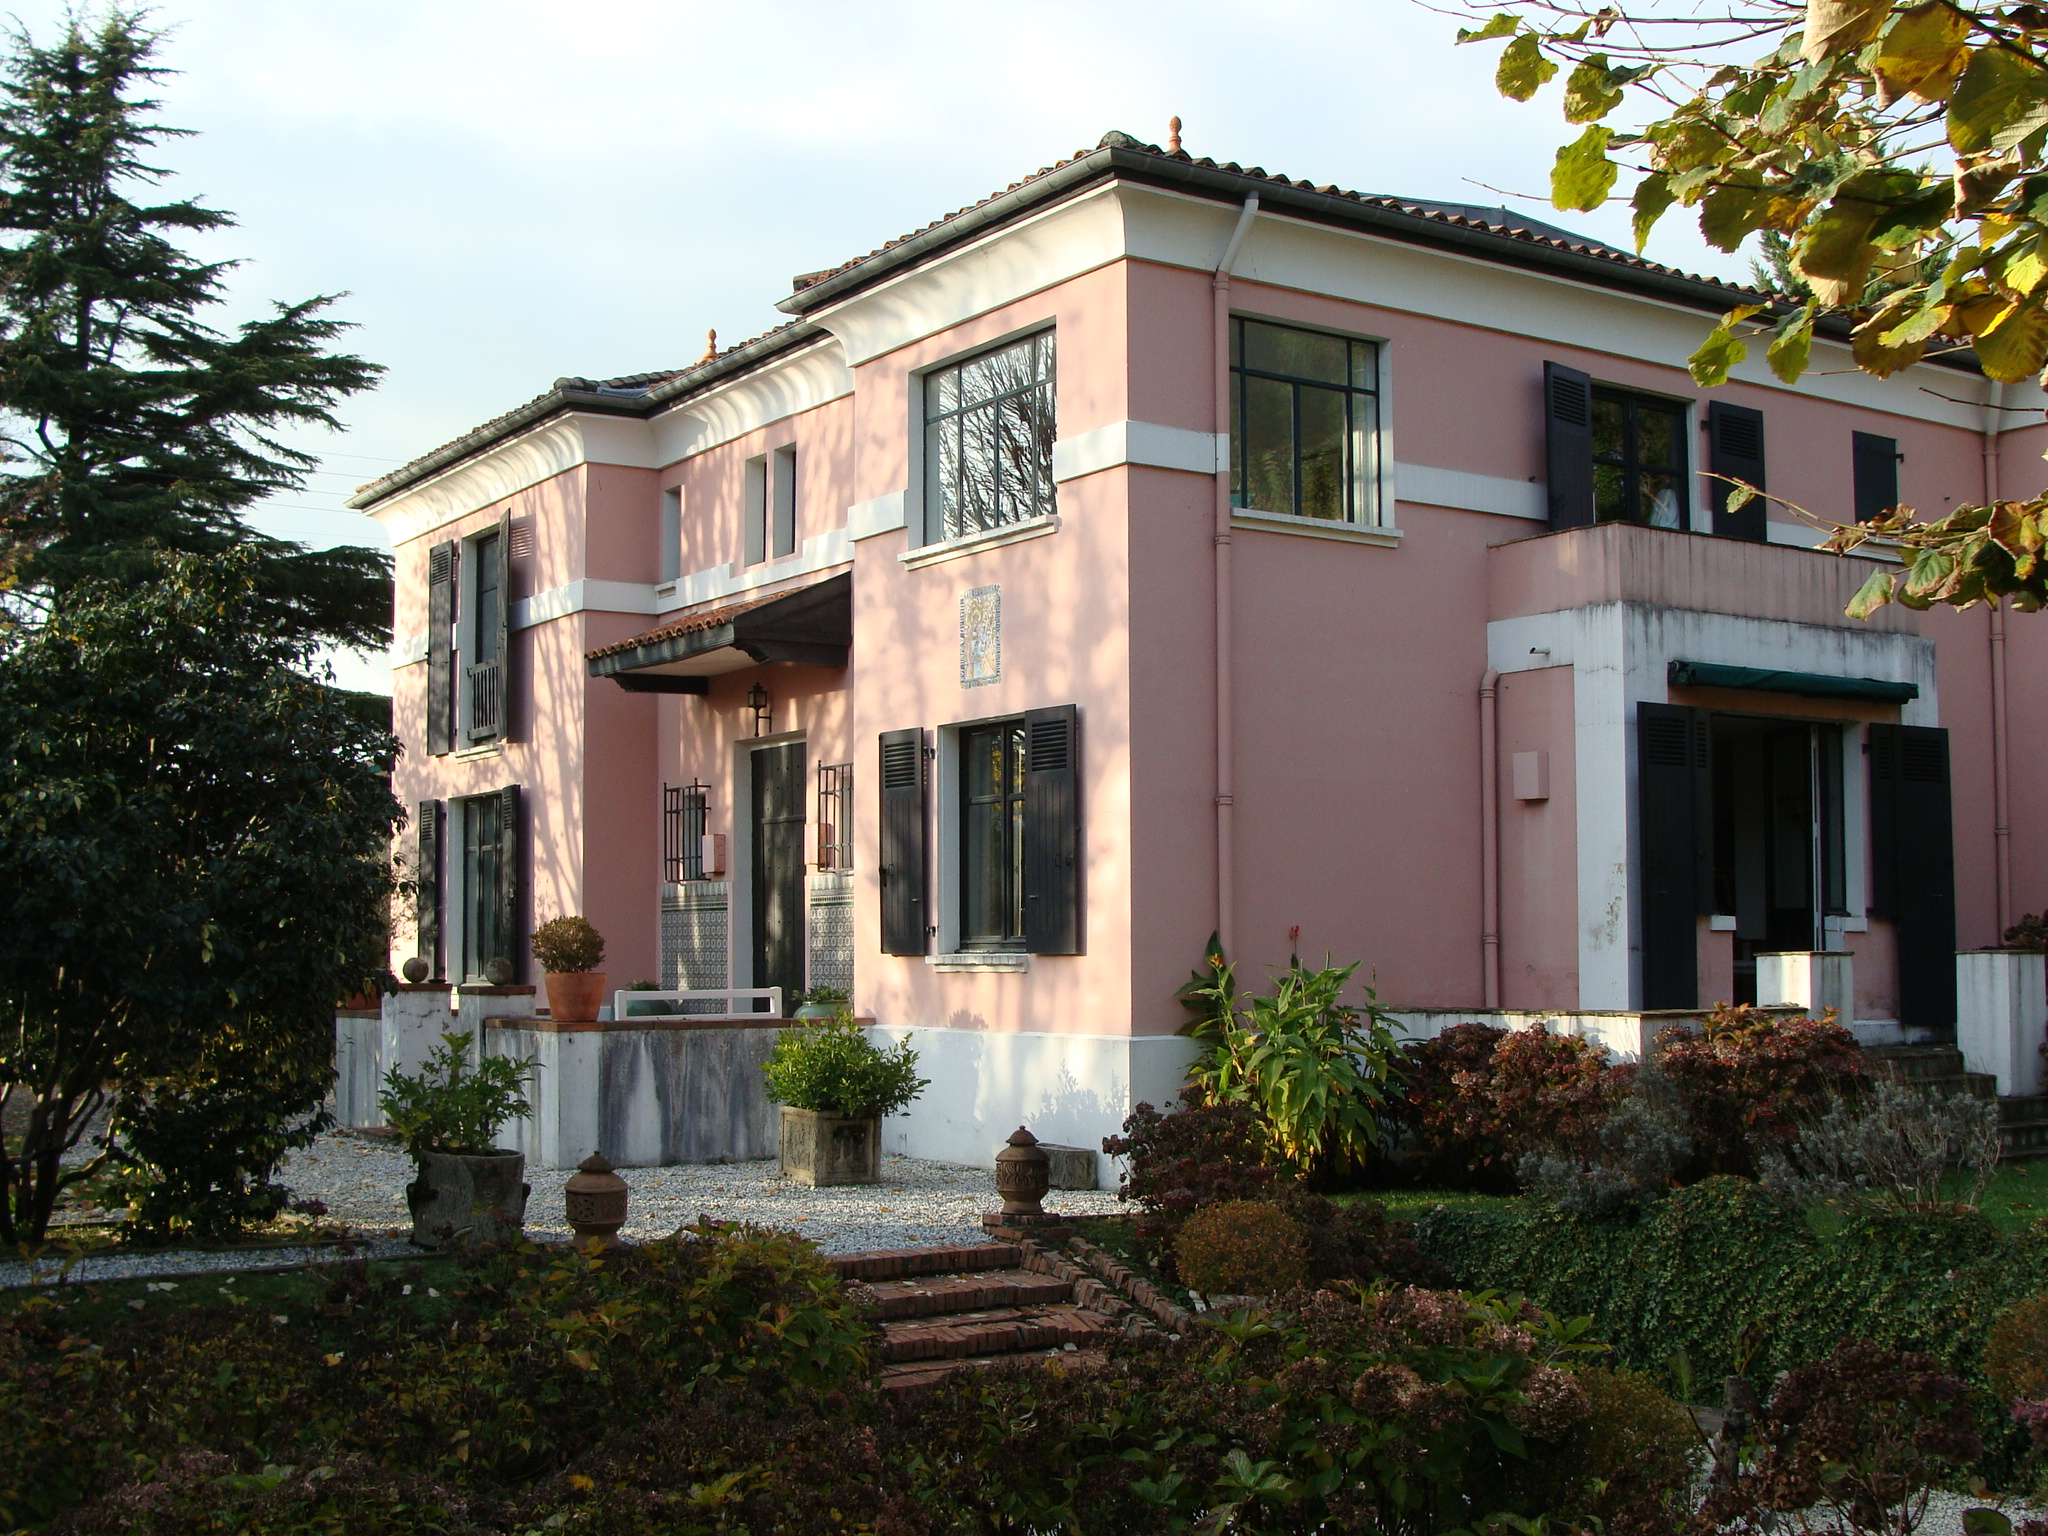 A vendre biarritz maison art d co ref ip pb 33 pays basque immobilier luxe prestige maison villa for Photo deco maison